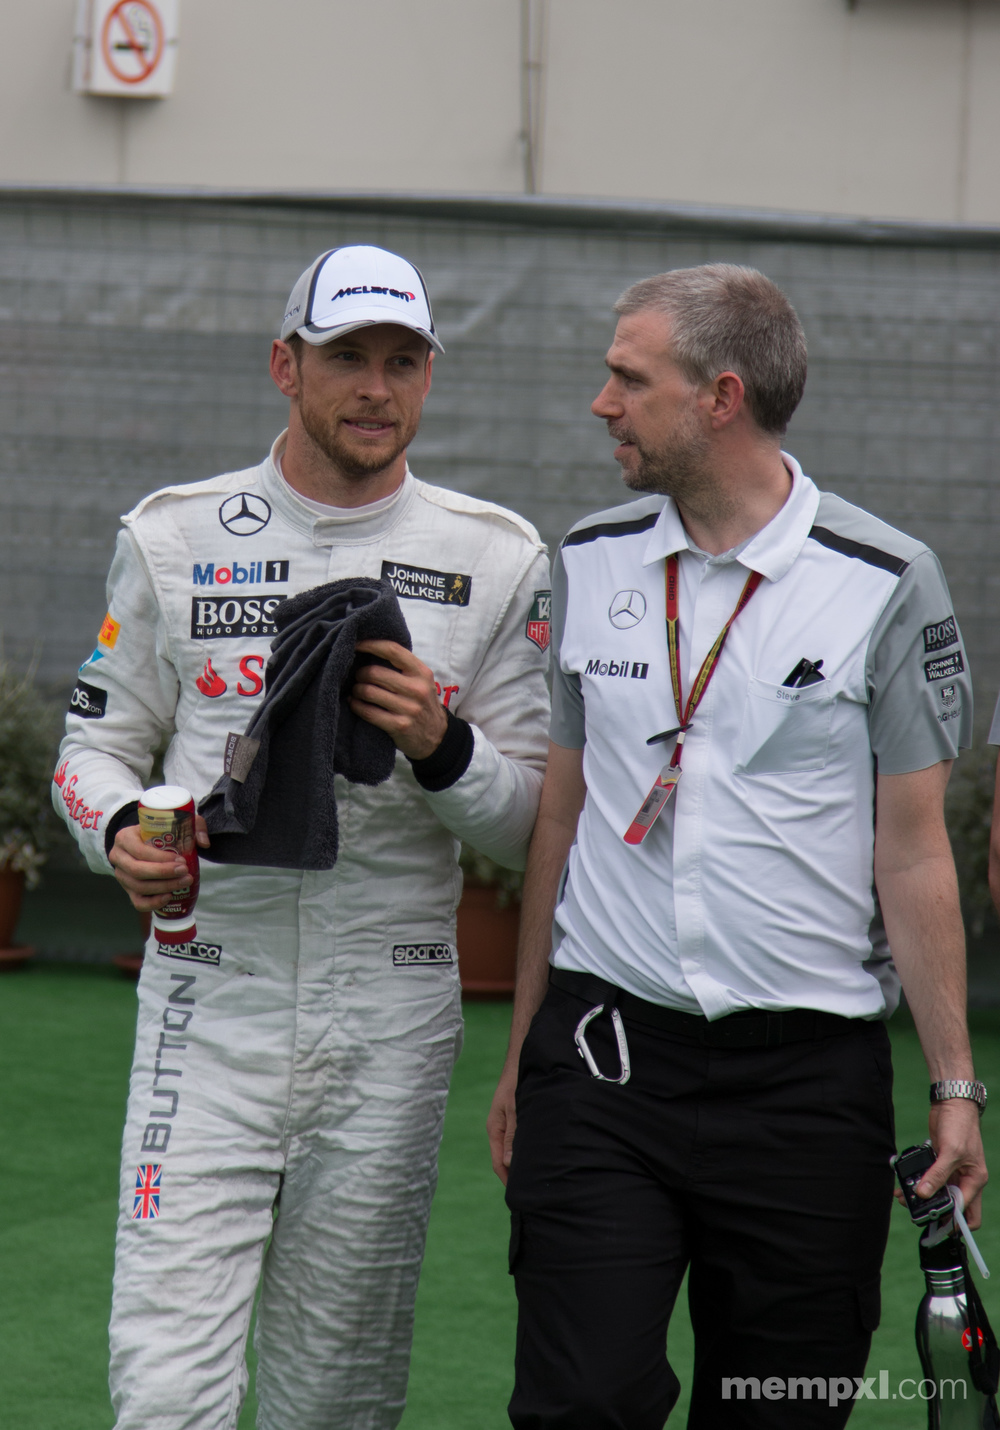 Spanish Grand Prix Main Event 2014 Jensen Button.jpg